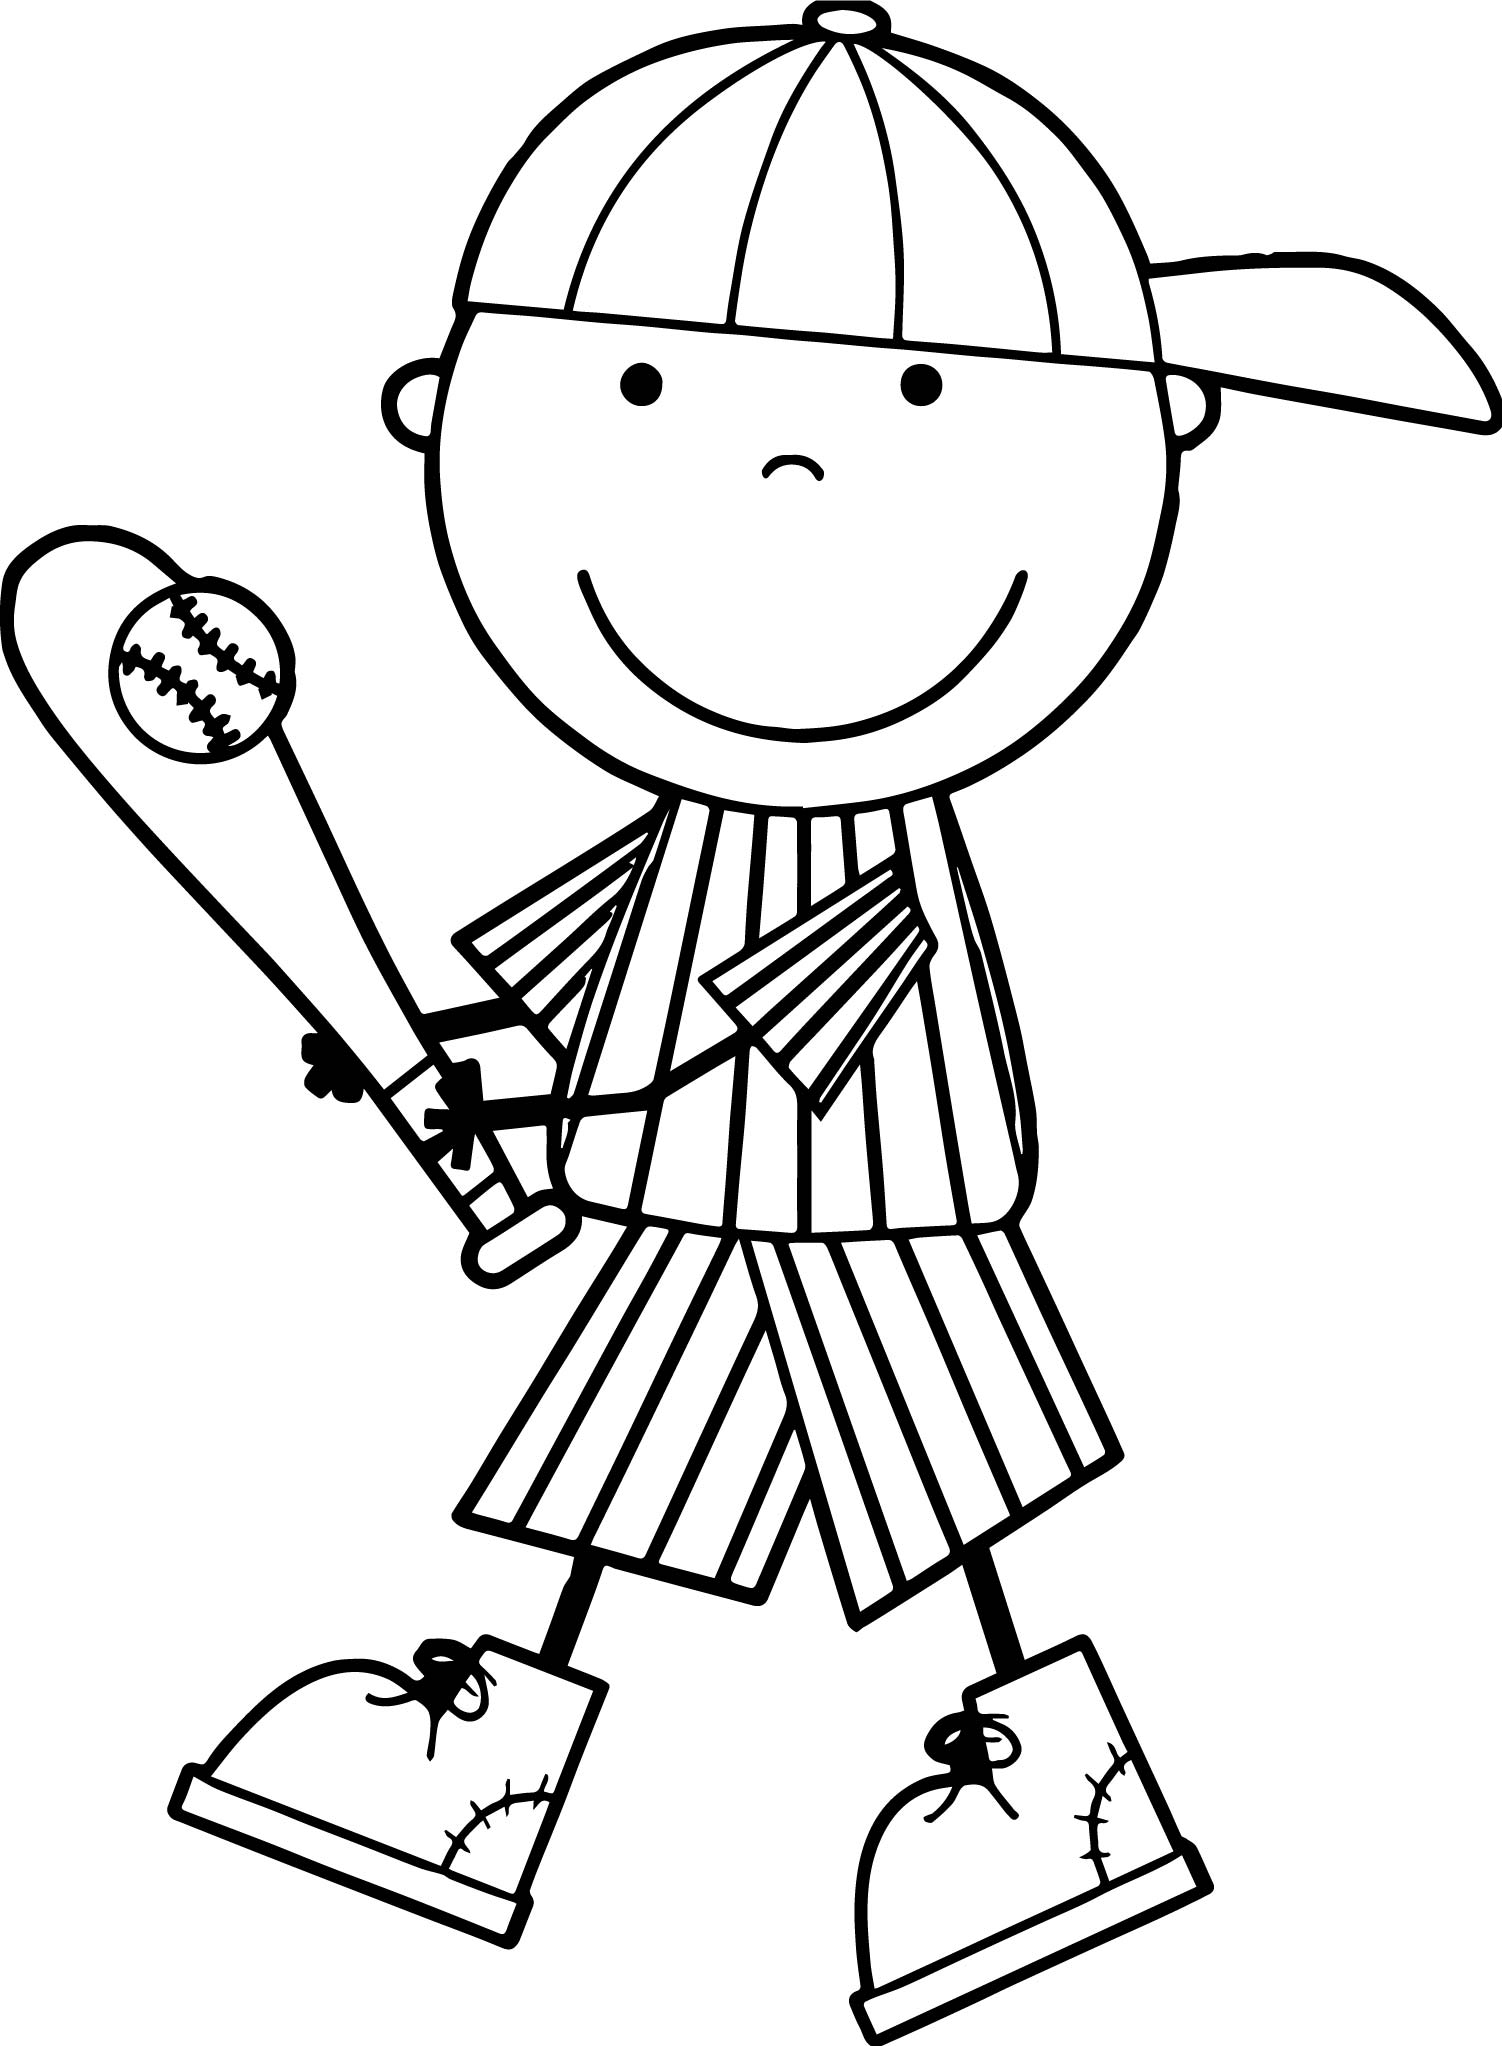 baseball coloring pages for preschoolers | Cute Kids Playing Baseball Coloring Page | Wecoloringpage.com